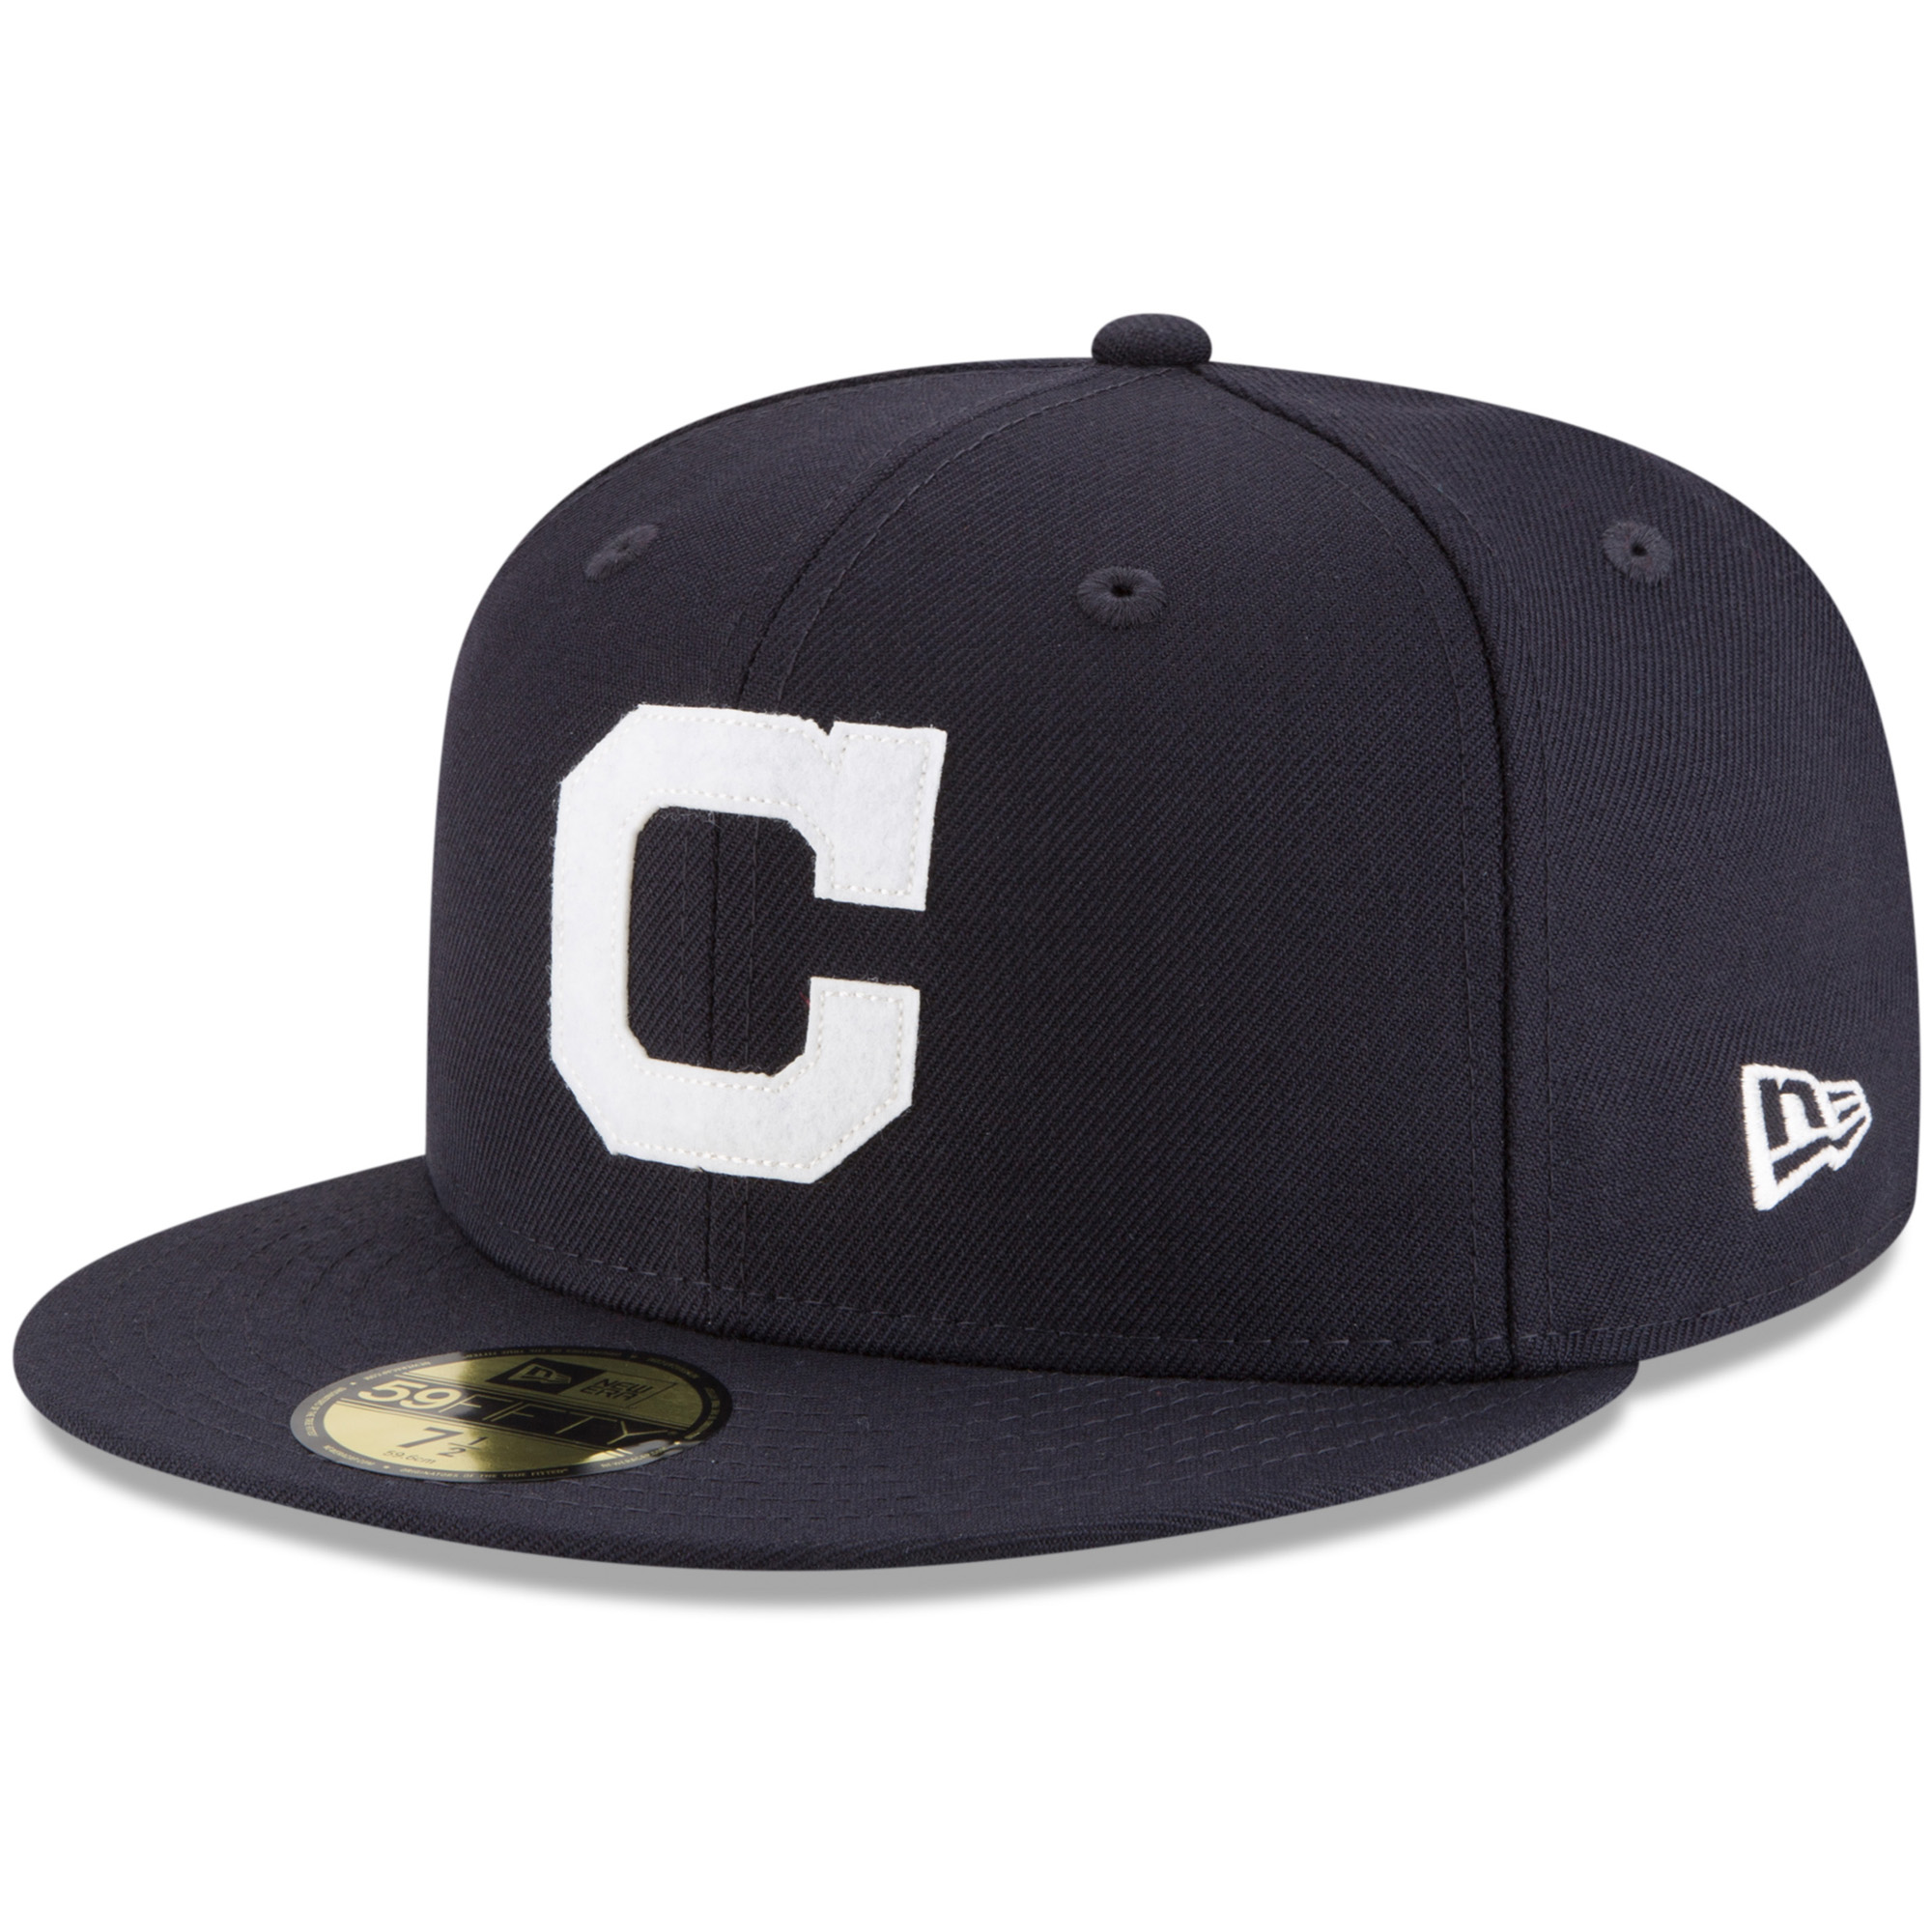 Cleveland Indians New Era Cooperstown Inaugural Season 59FIFTY Fitted Hat - Navy